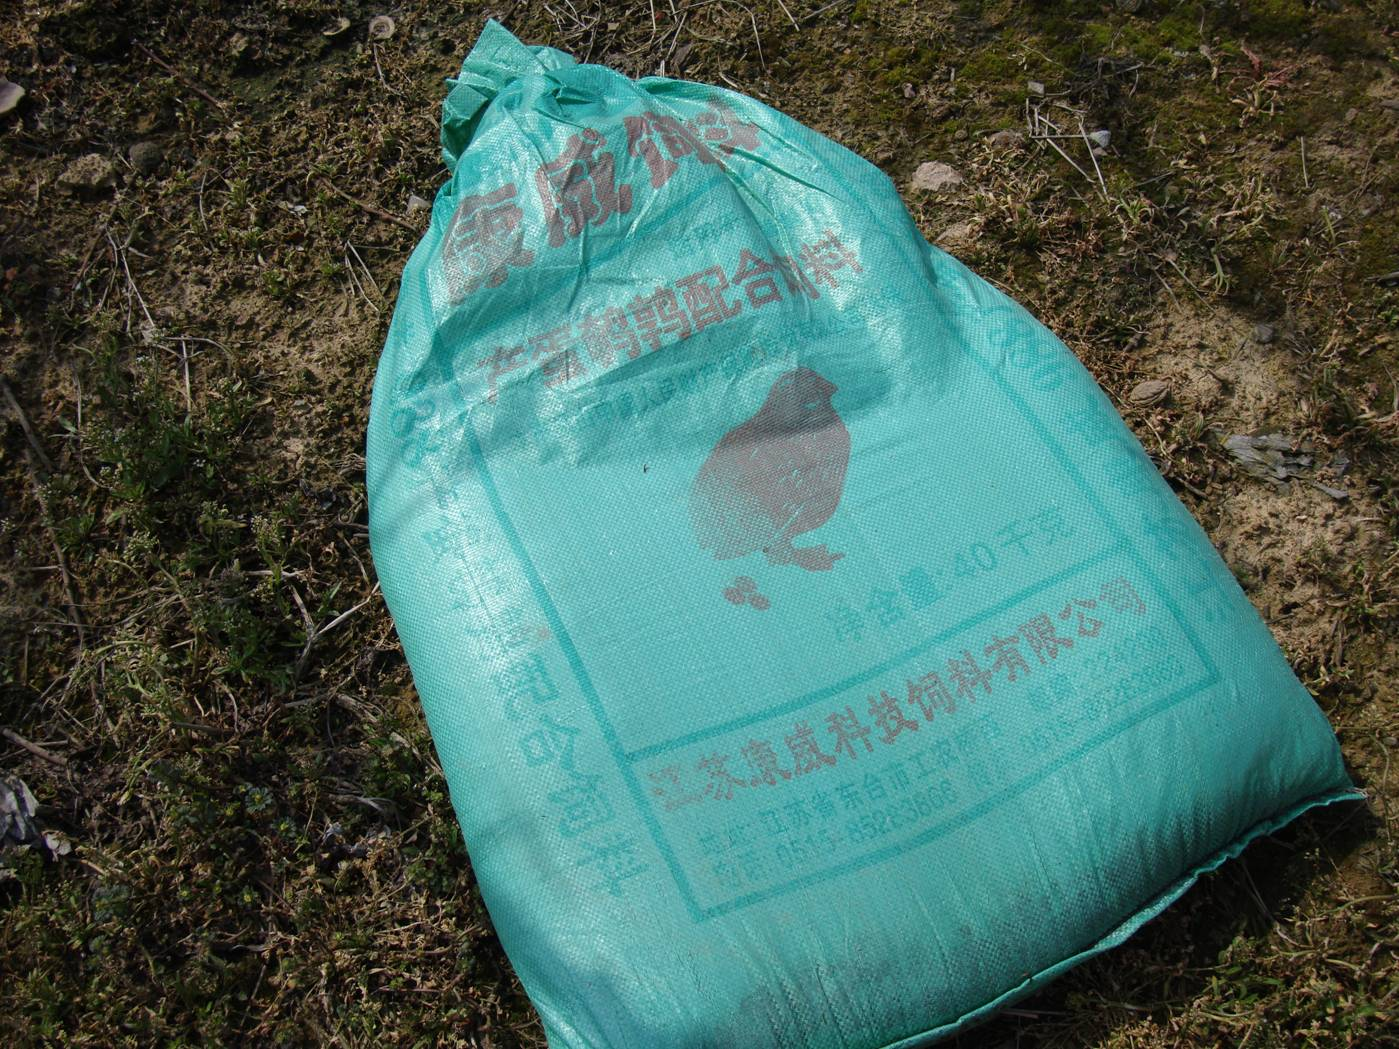 Picture:  A closer shot of a  bag of fertilizer.  Yang Shan, Wuxi, China